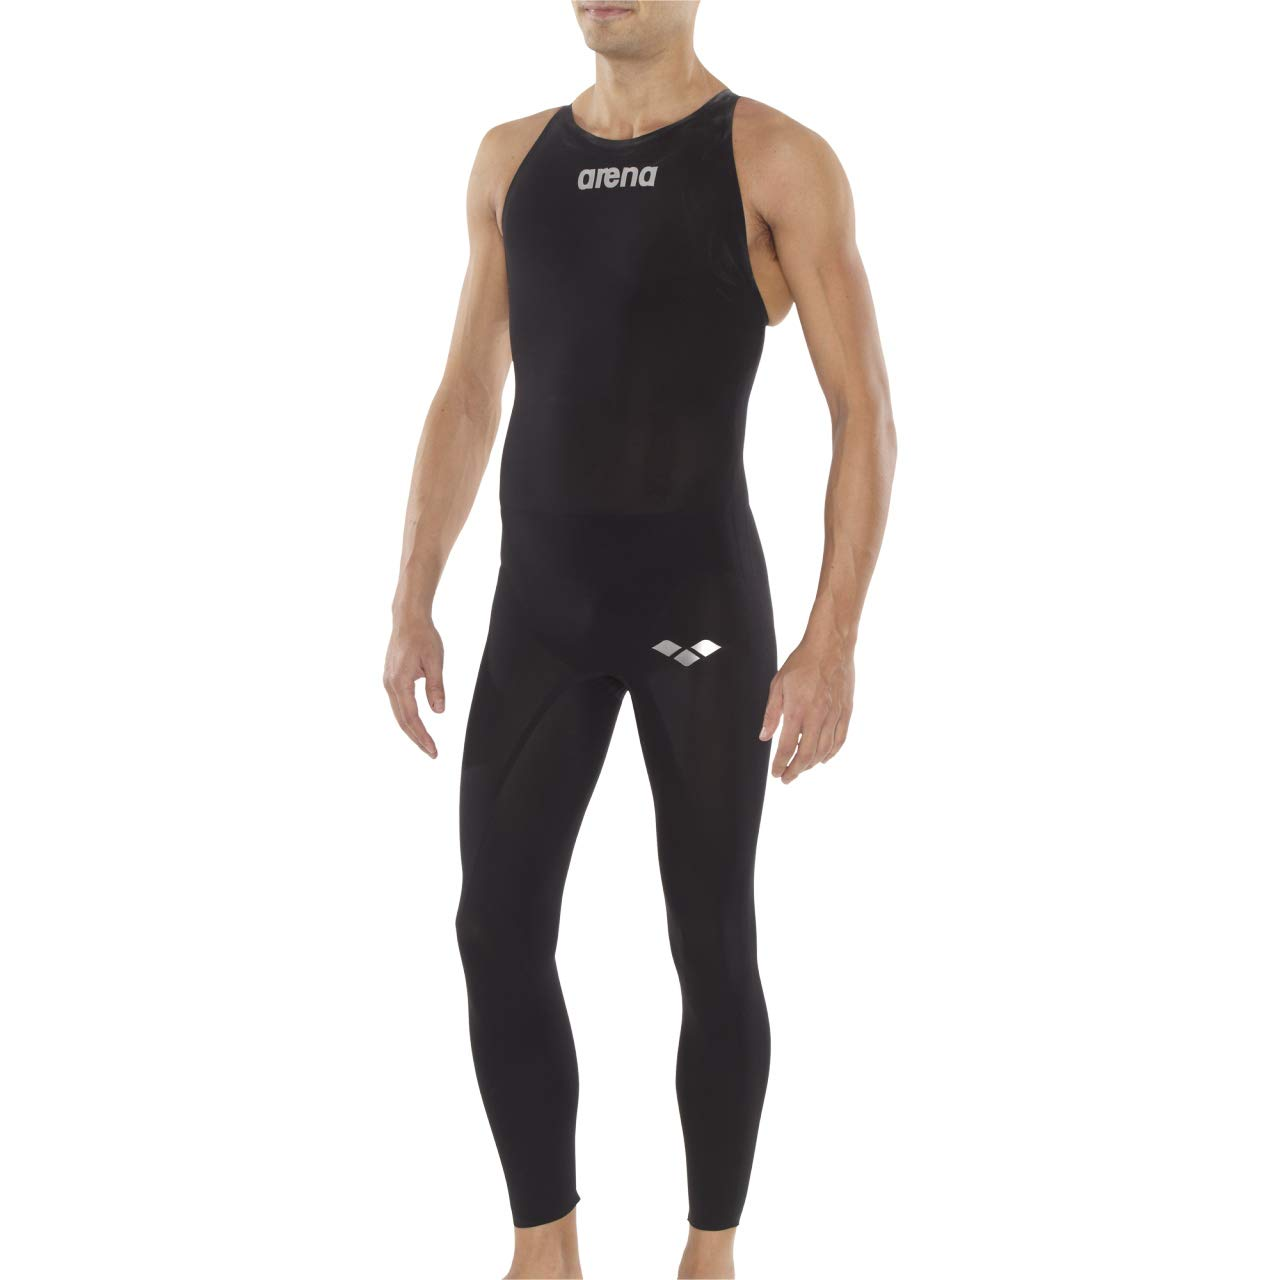 arena Powerskin R-Evo+ Open Water Closed Back Men's Racing Swimsuit, Black, 24